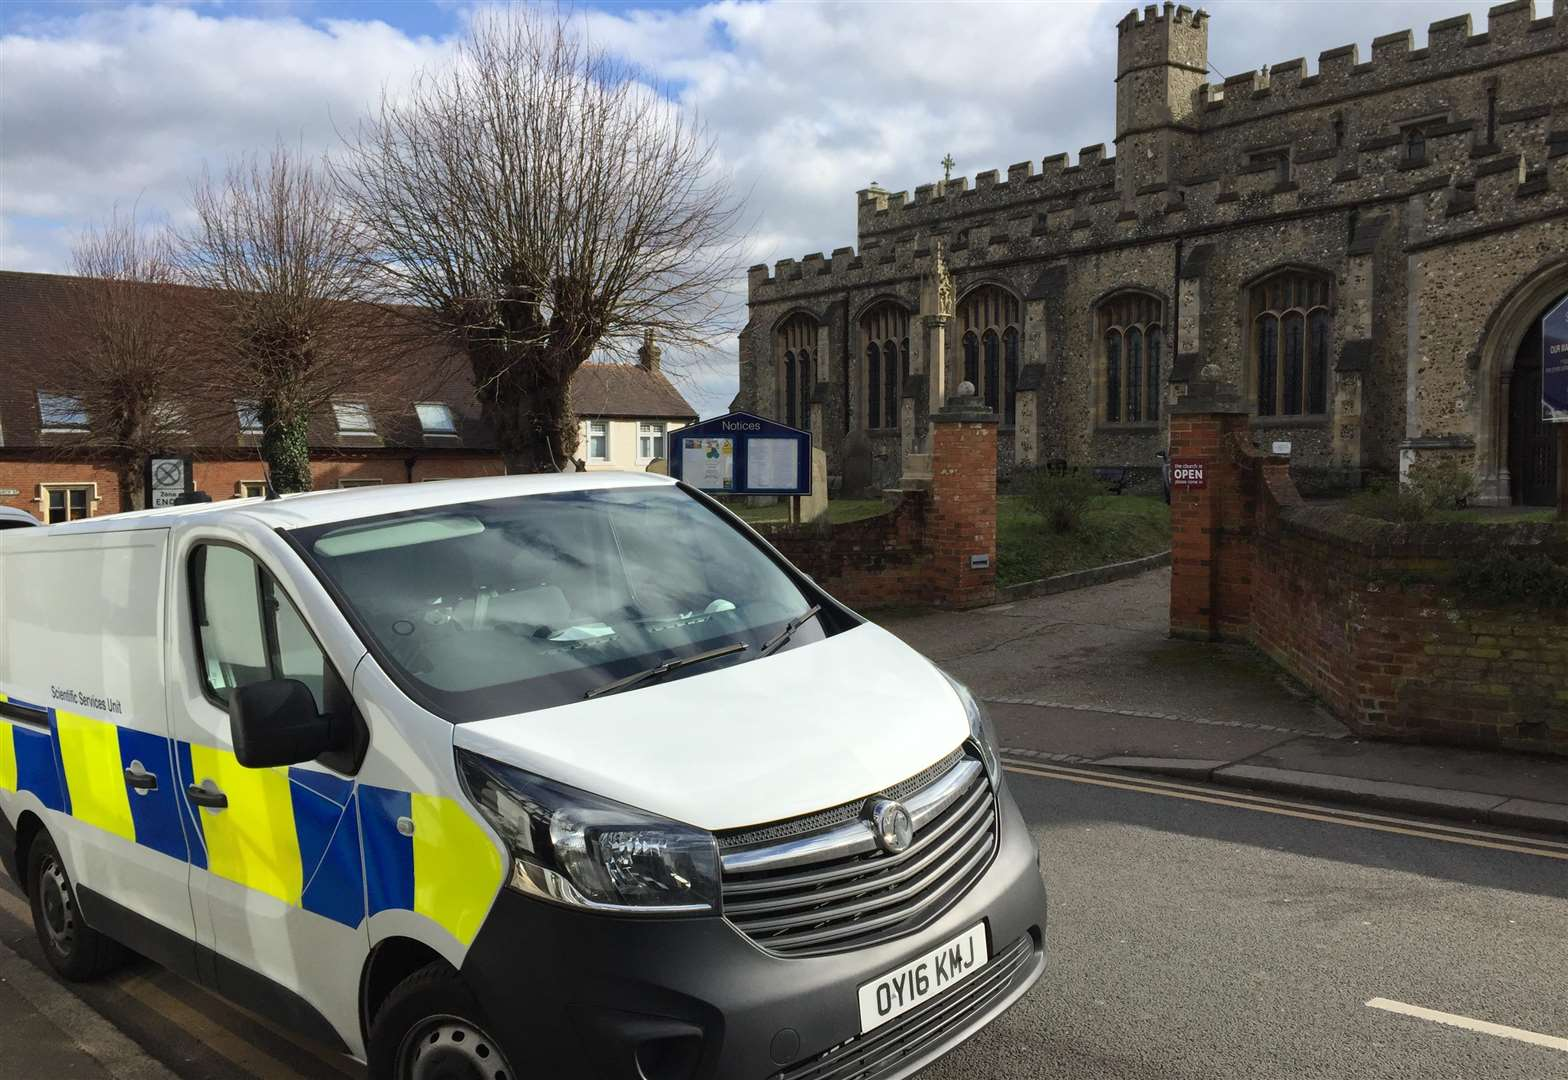 Raiders smash stained glass window in St Michael's Church break-in